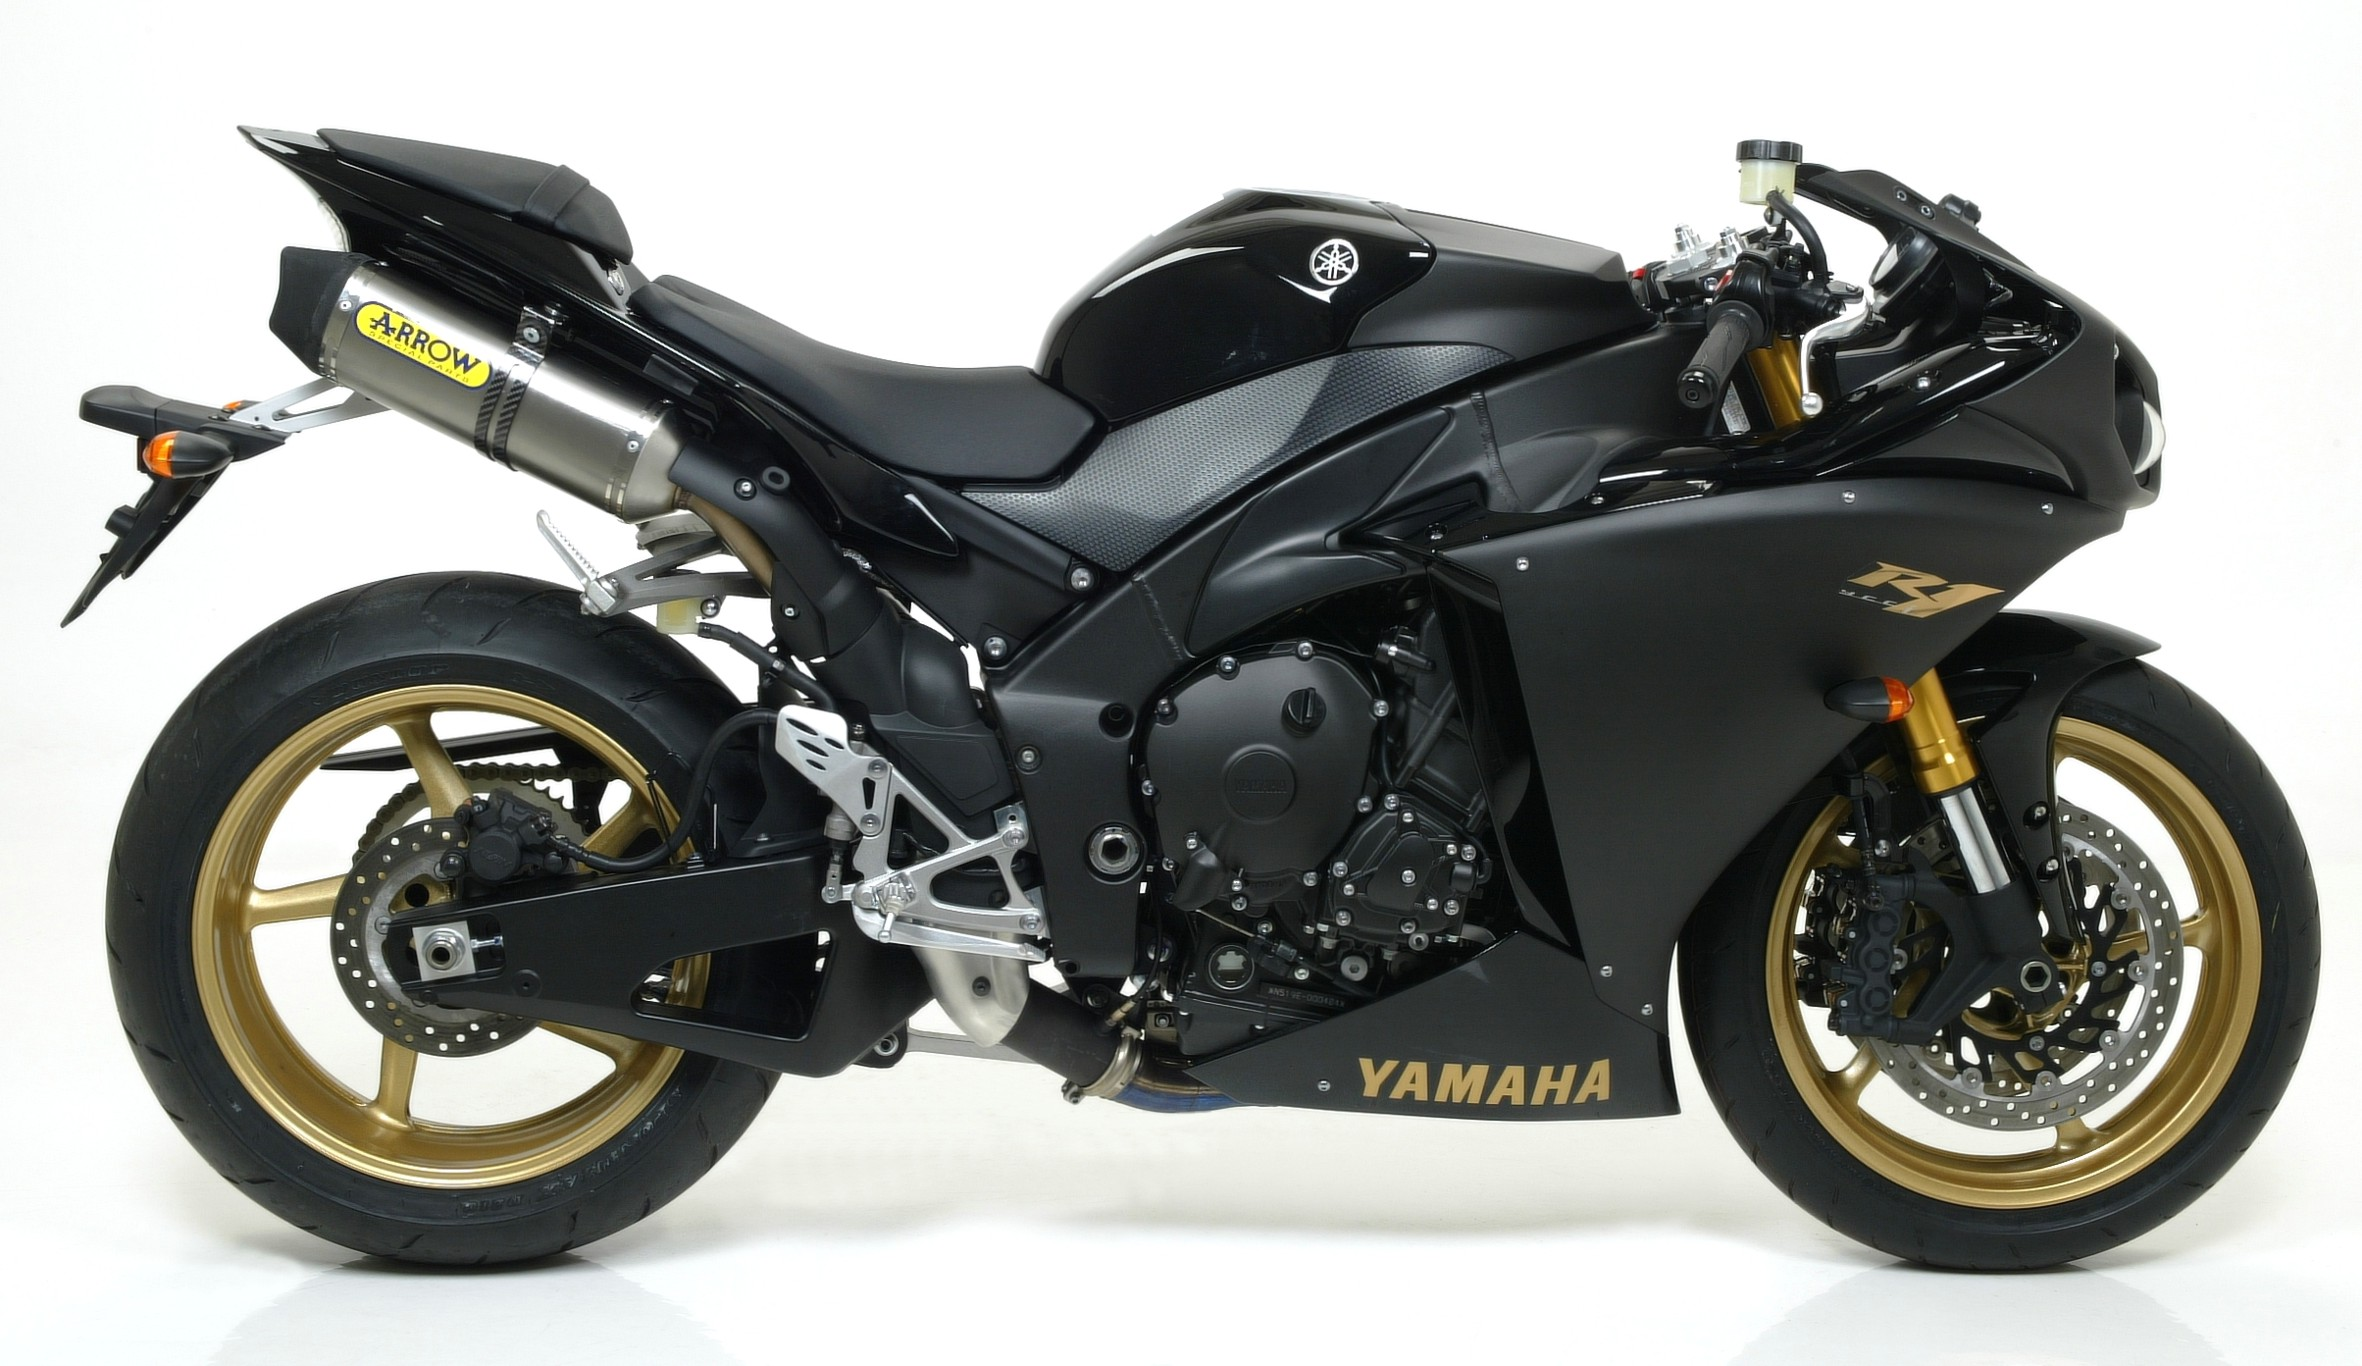 yamaha yamaha yzf 1000 r1 moto zombdrive com. Black Bedroom Furniture Sets. Home Design Ideas